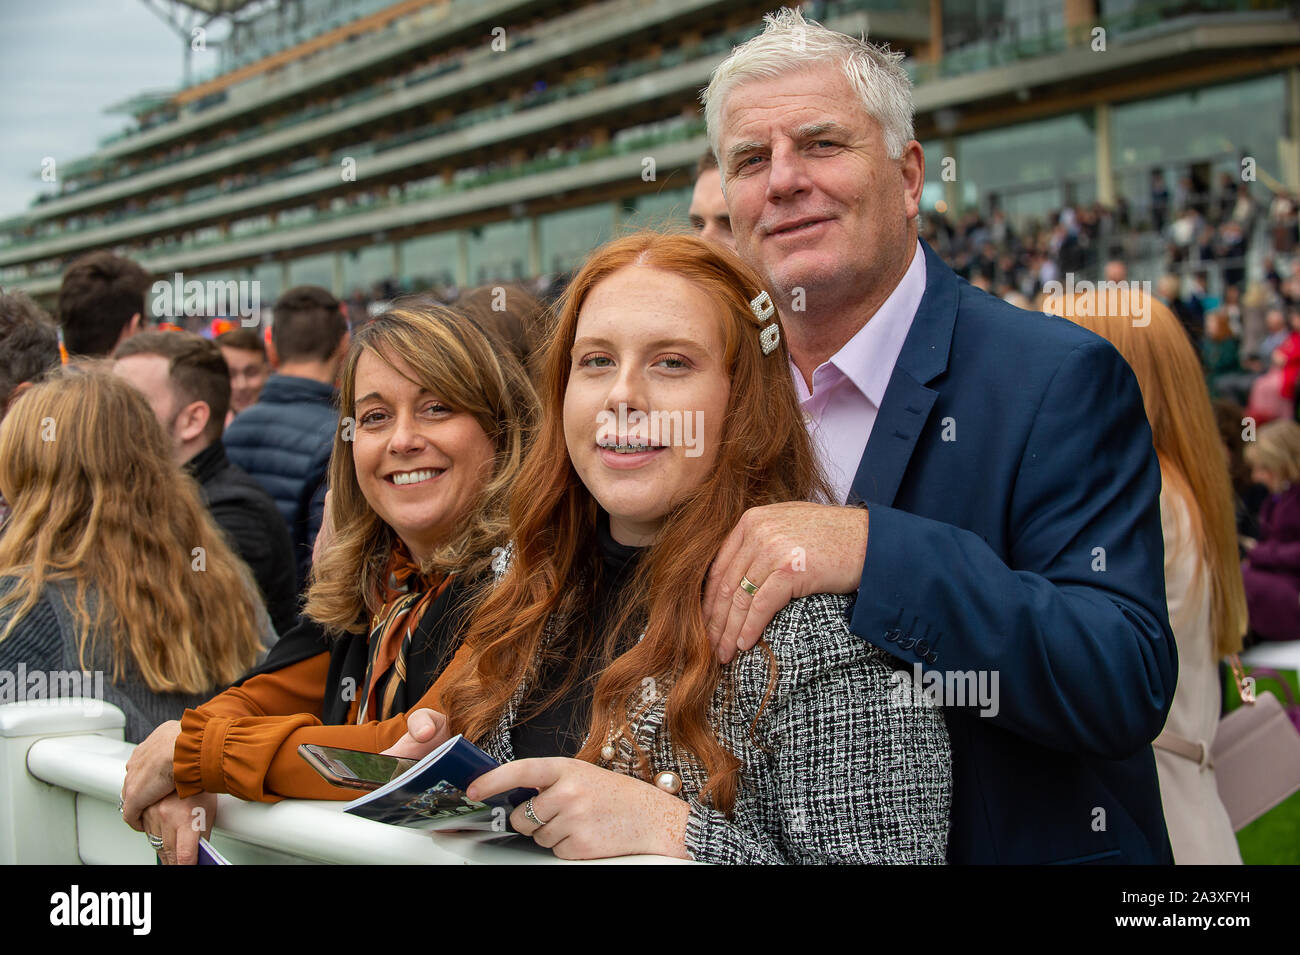 Autumn Racing Weekend & Ascot Beer Festival, Ascot Racecourse, Ascot, Berkshire, UK. 5th October, 2019. A family day out at Ascot. Credit: Maureen McLean/Alamy Stock Photo